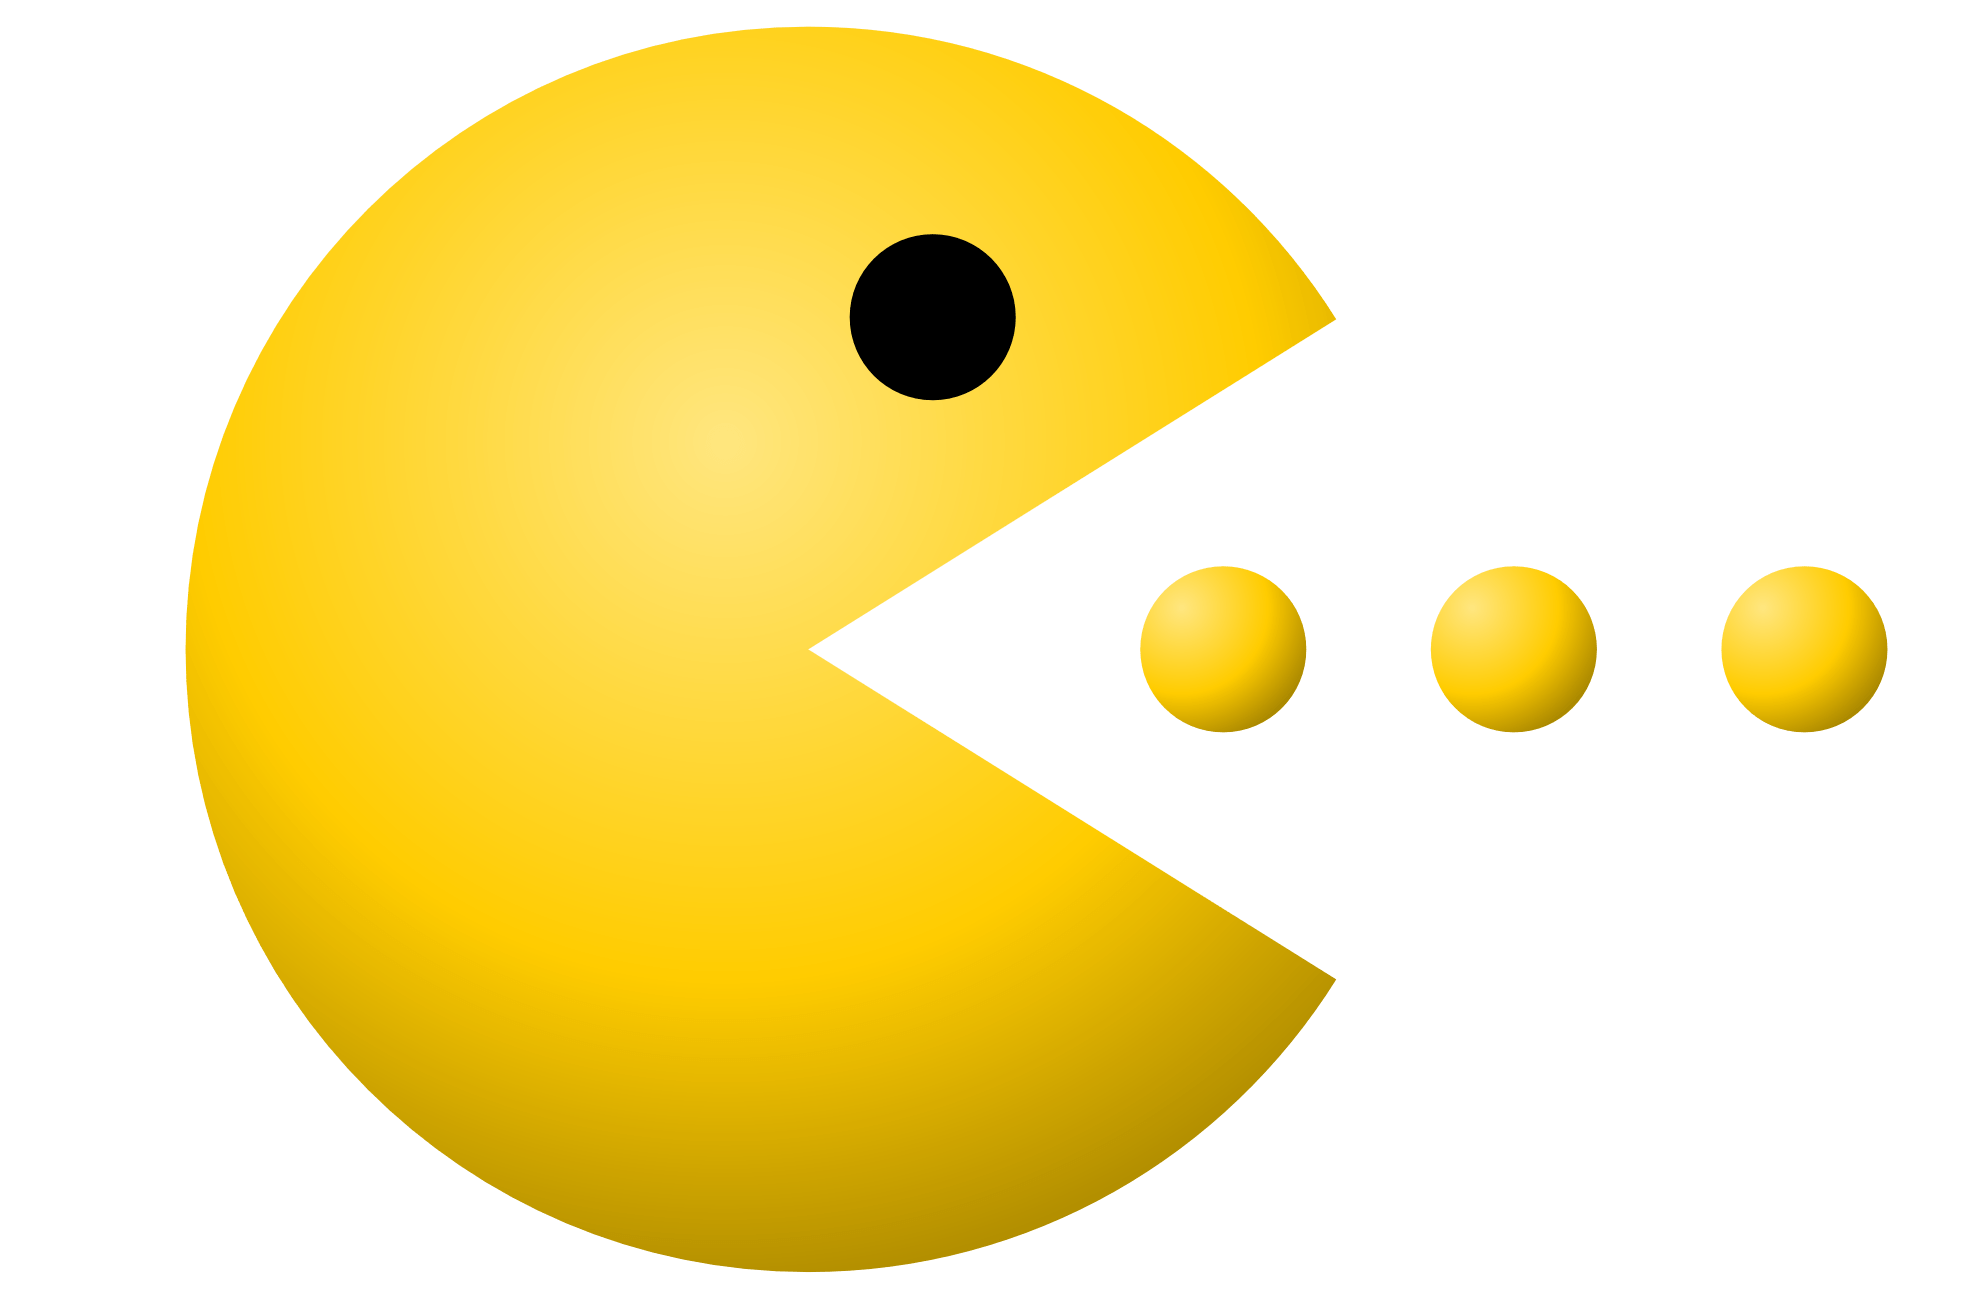 Pacman clipart. Eating transparent png stickpng